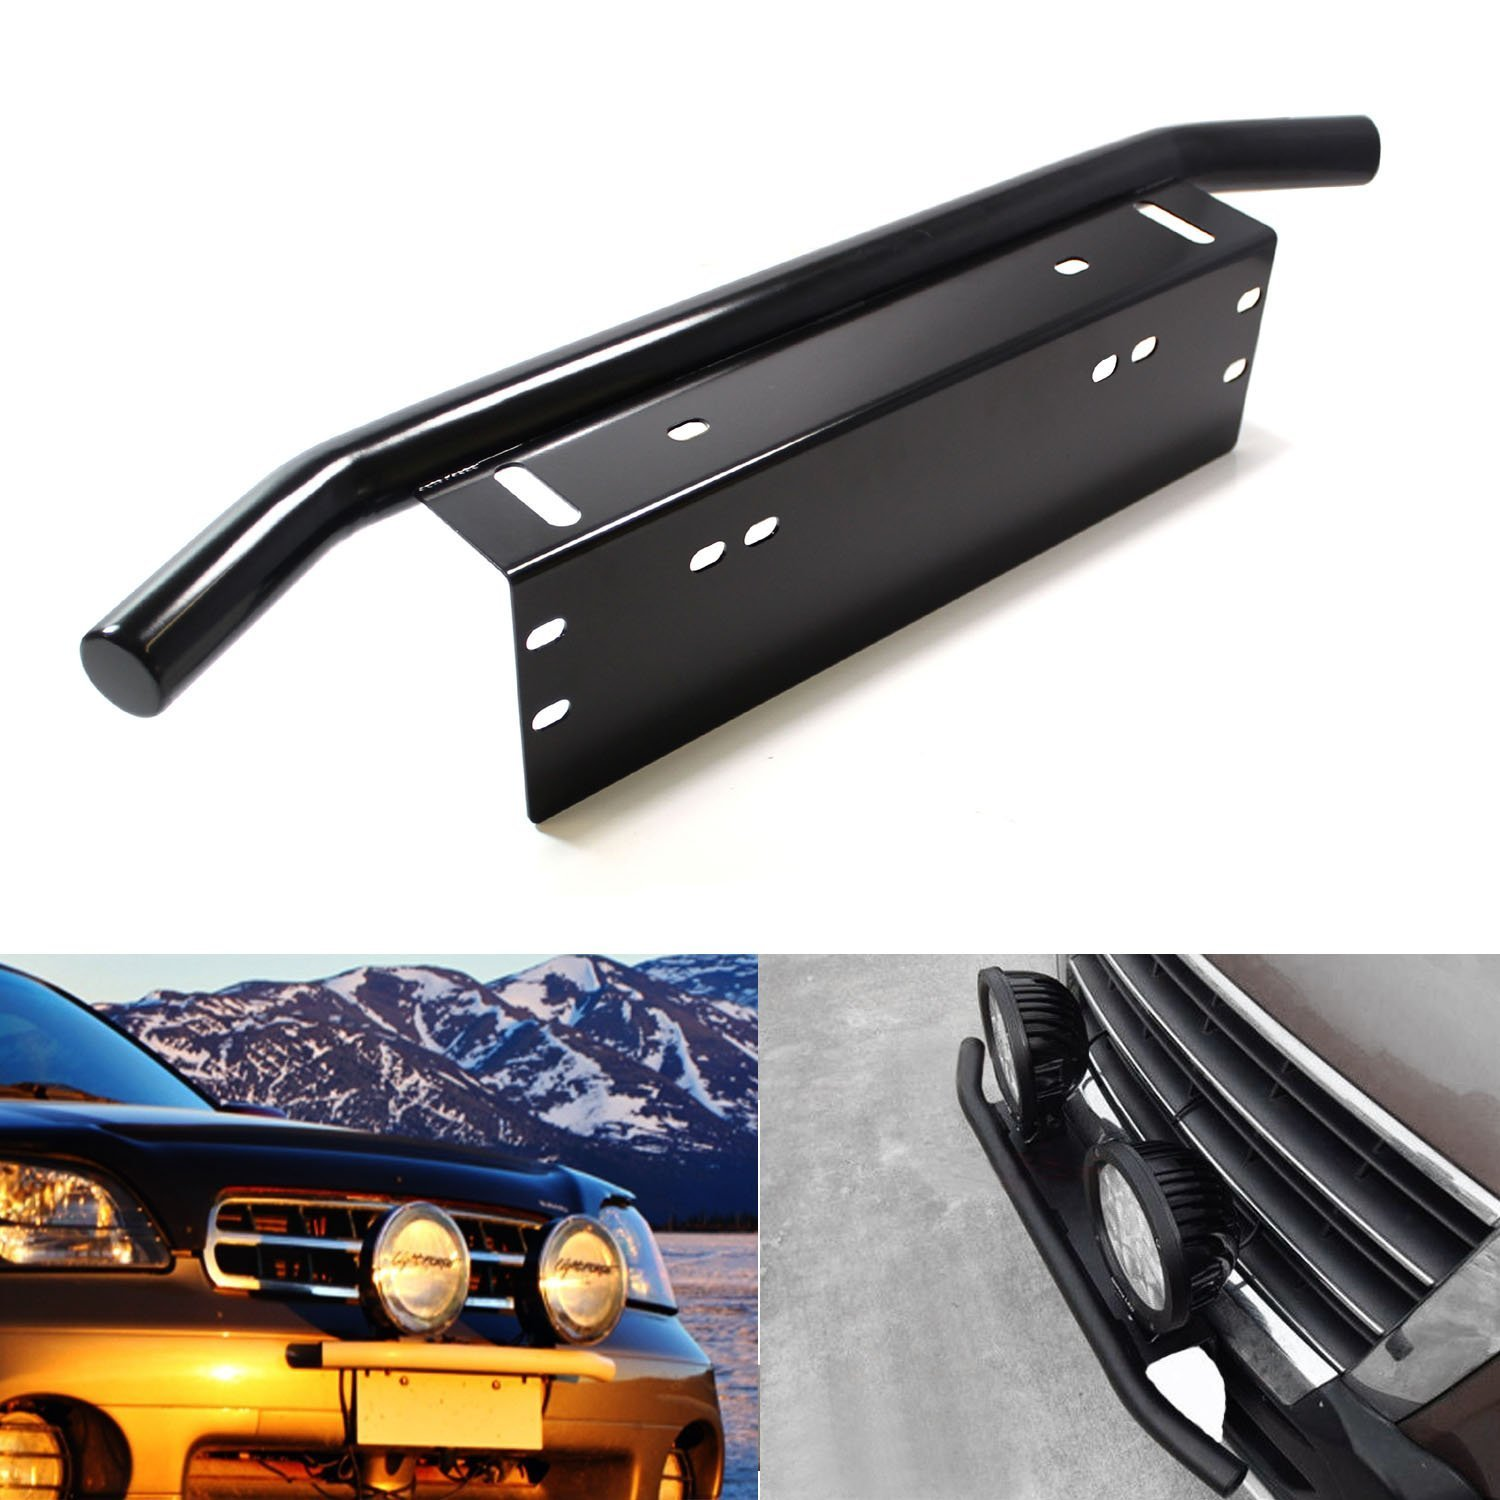 Amazon.com AUXMART Front License Plate Bracket Mount Holder Bull Bar Style Holder for Off-Road Lights (Black Universal Fit) Automotive  sc 1 st  Amazon.com : liscense plate holder - pezcame.com